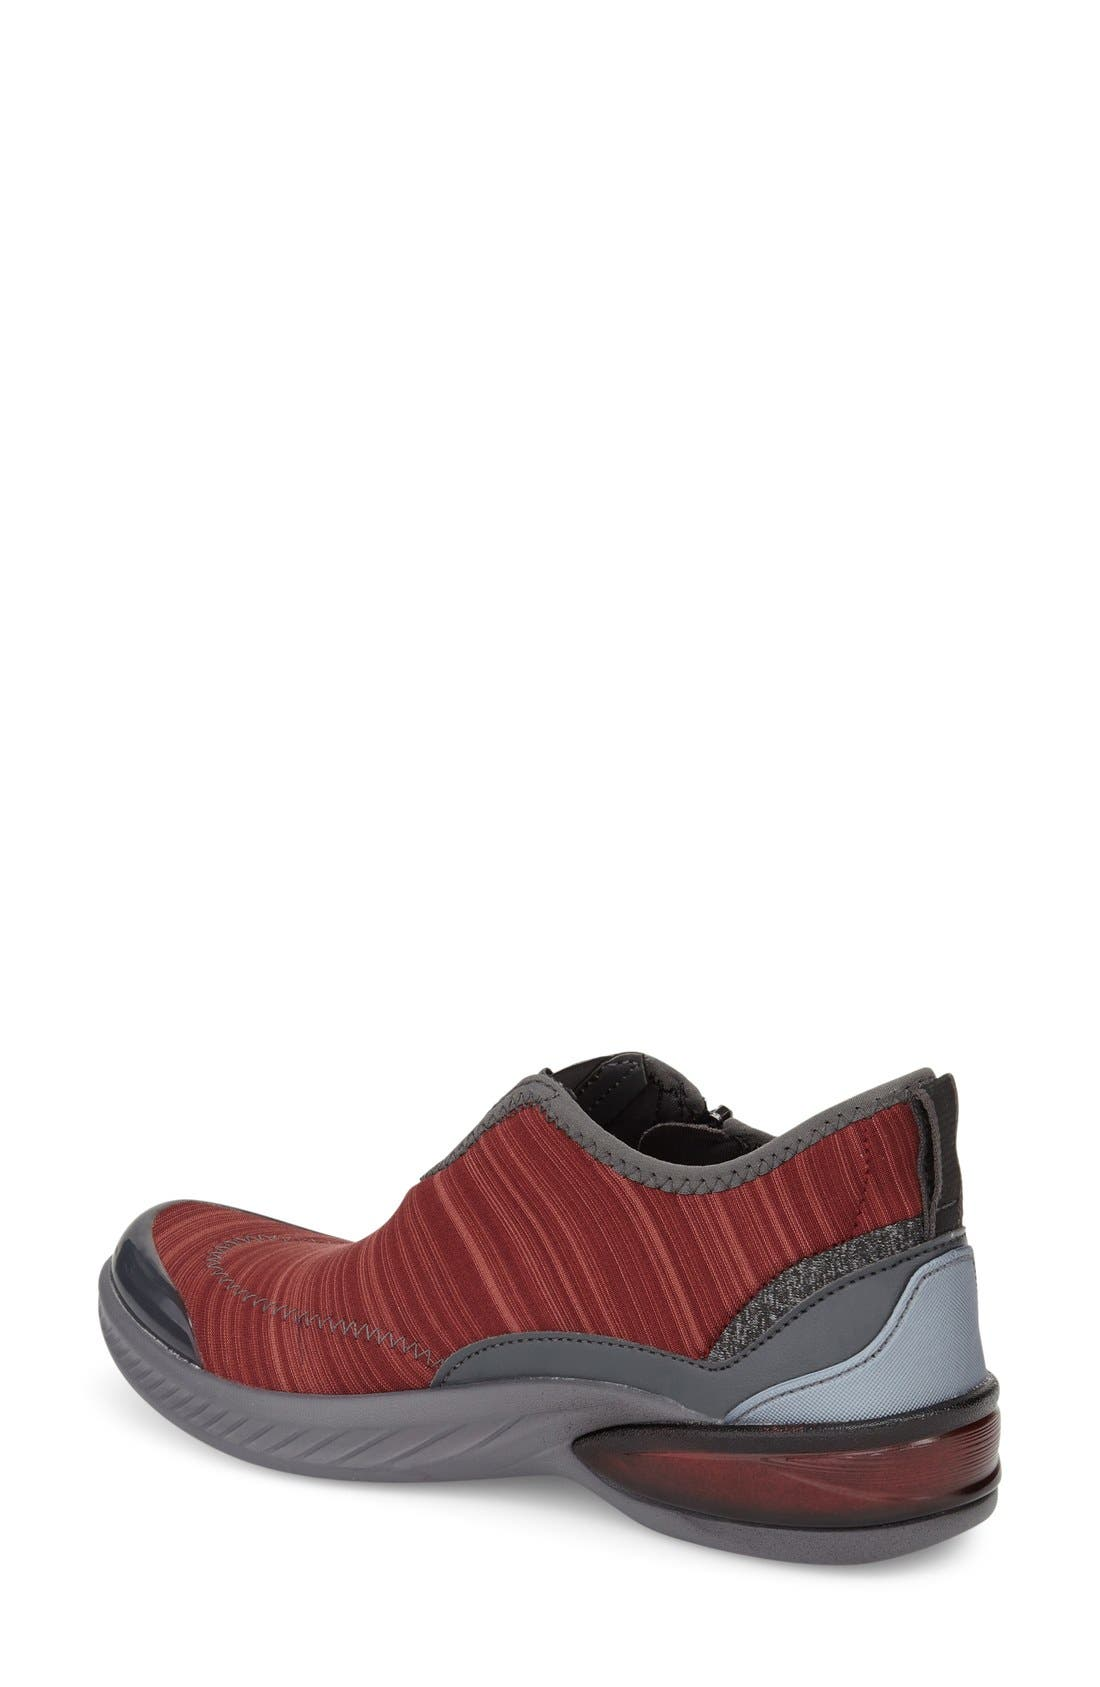 Nova Midi Sneaker,                             Alternate thumbnail 2, color,                             DARK RED LINEAR HEATHER FABRIC